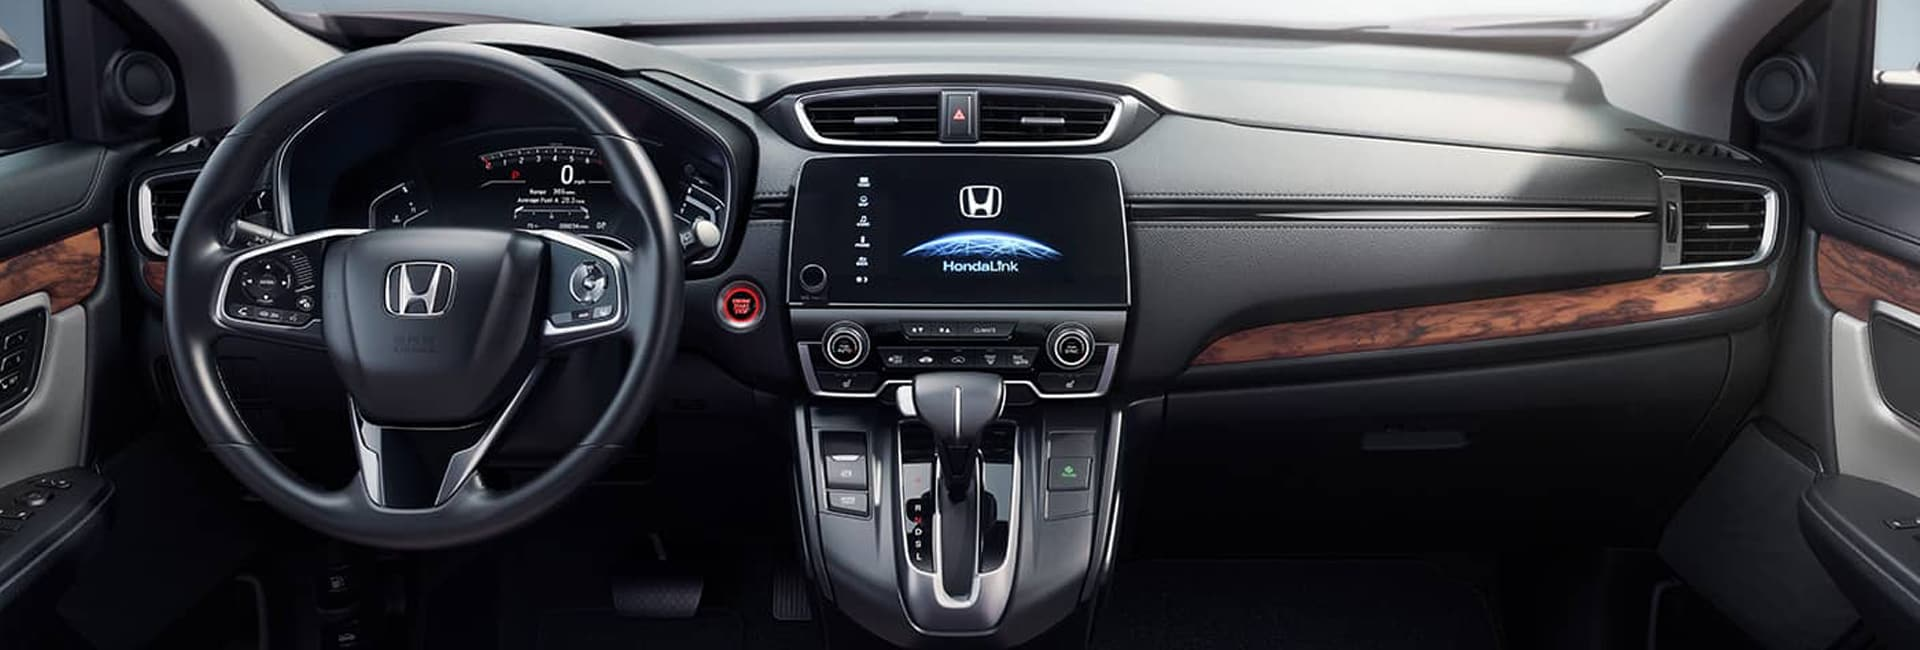 2020 Honda CR-V Hybrid Interior Features